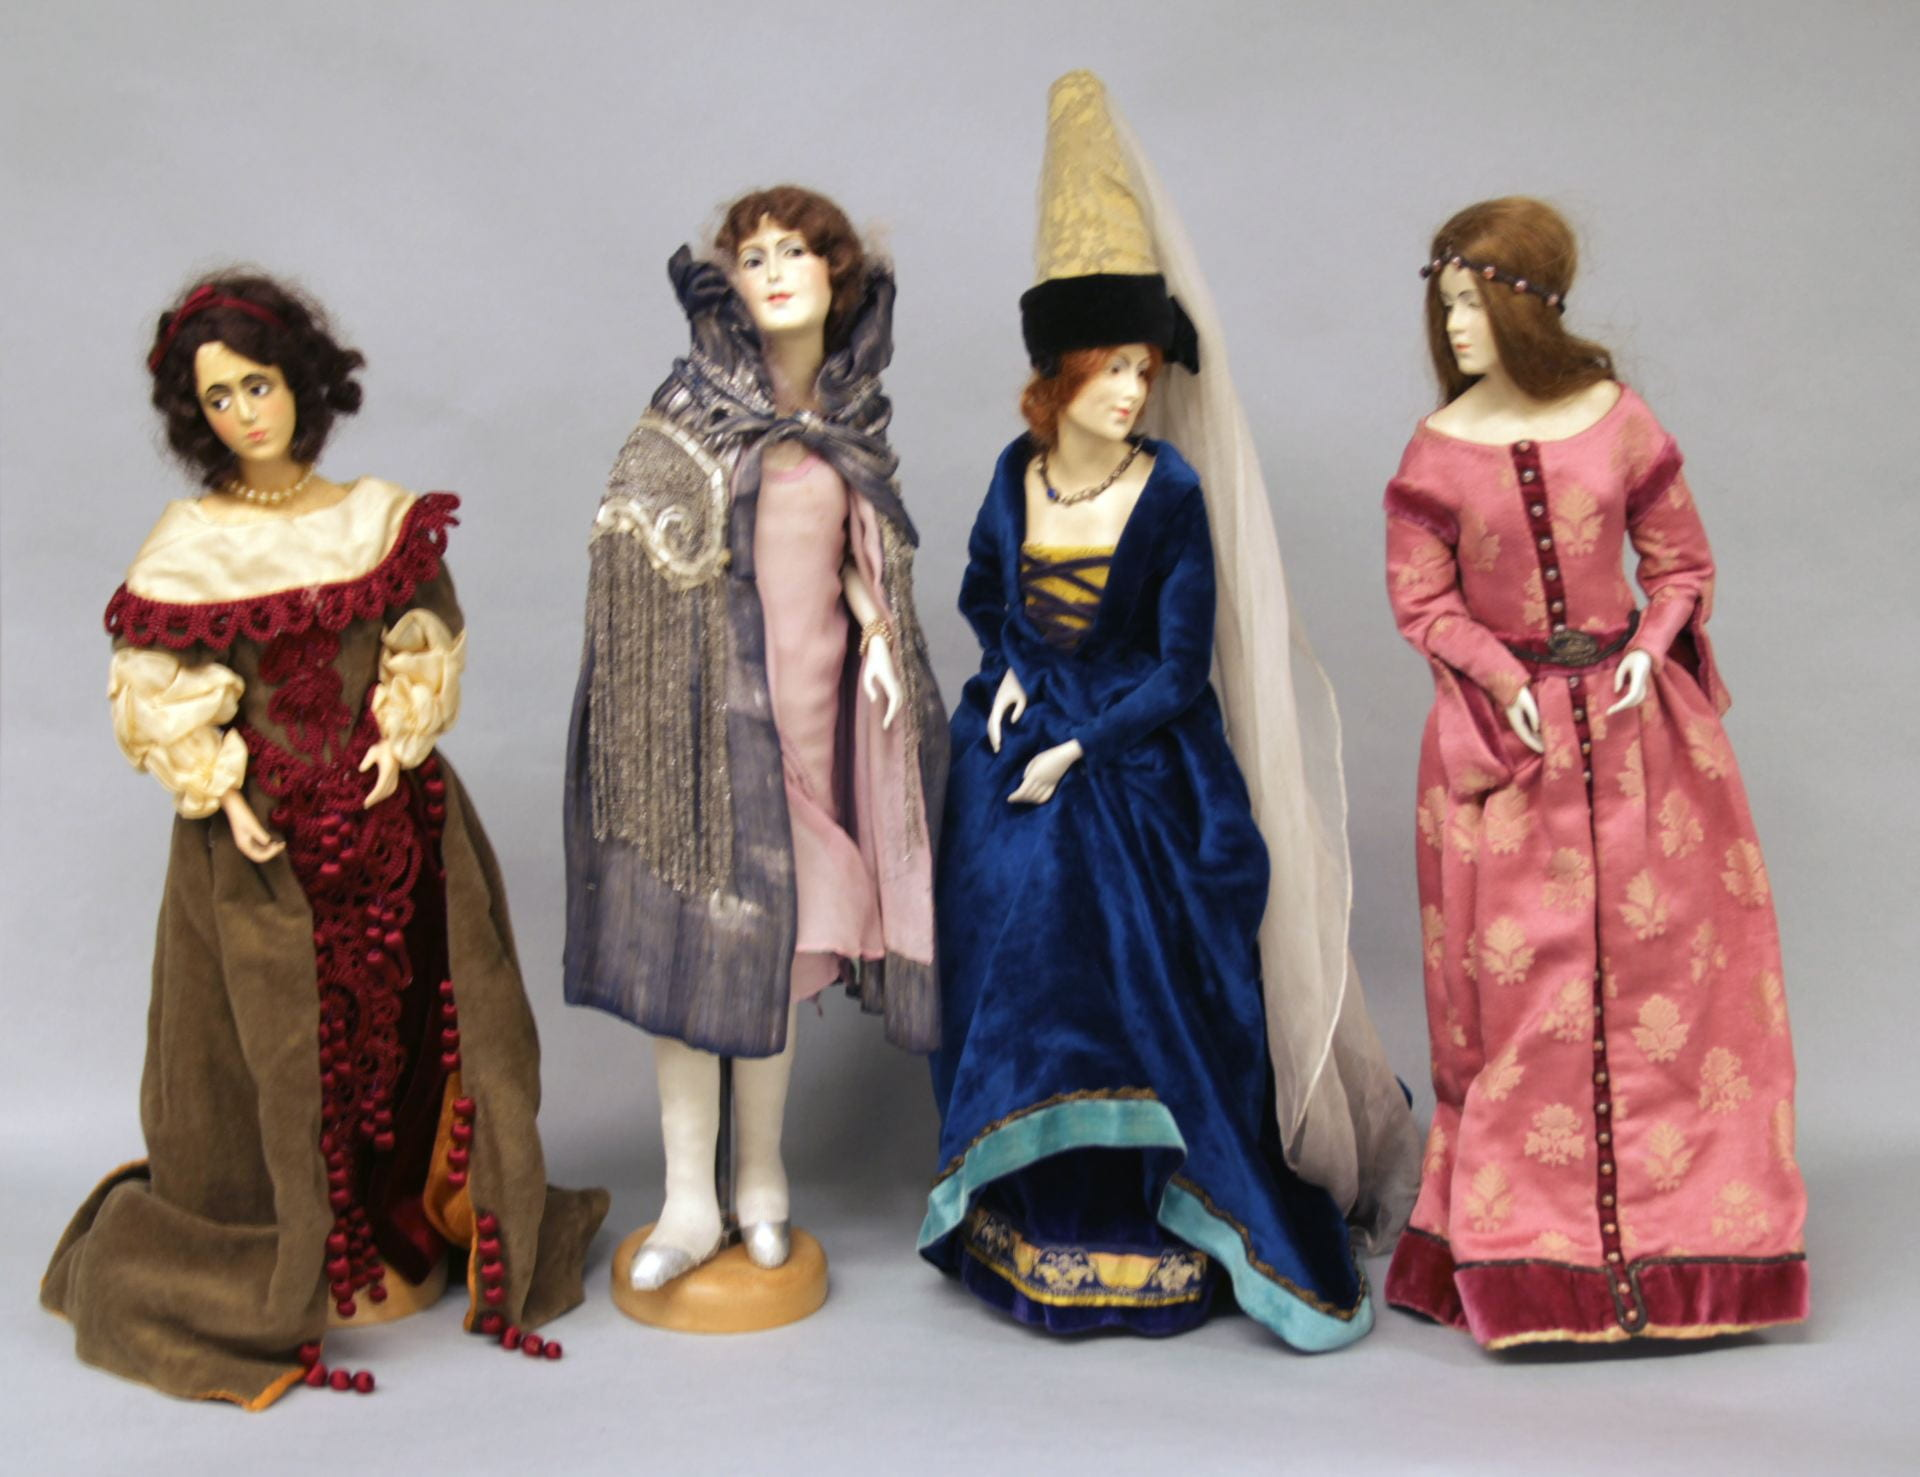 A selection of dolls from the Dora Erway Doll Collection